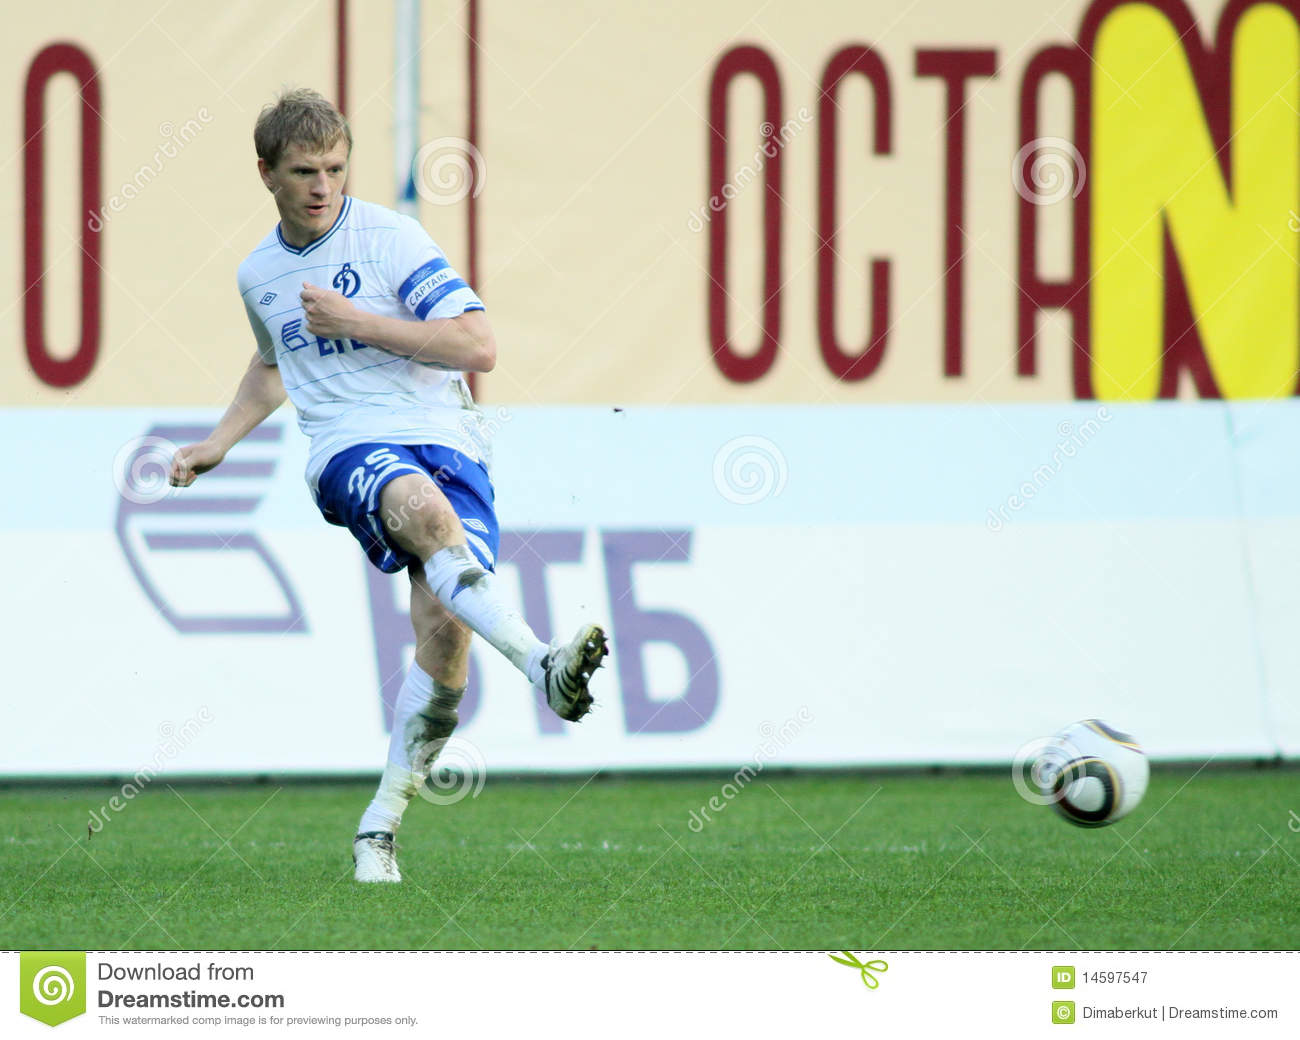 Kolodin in a game of the 11th round of russian football premier league